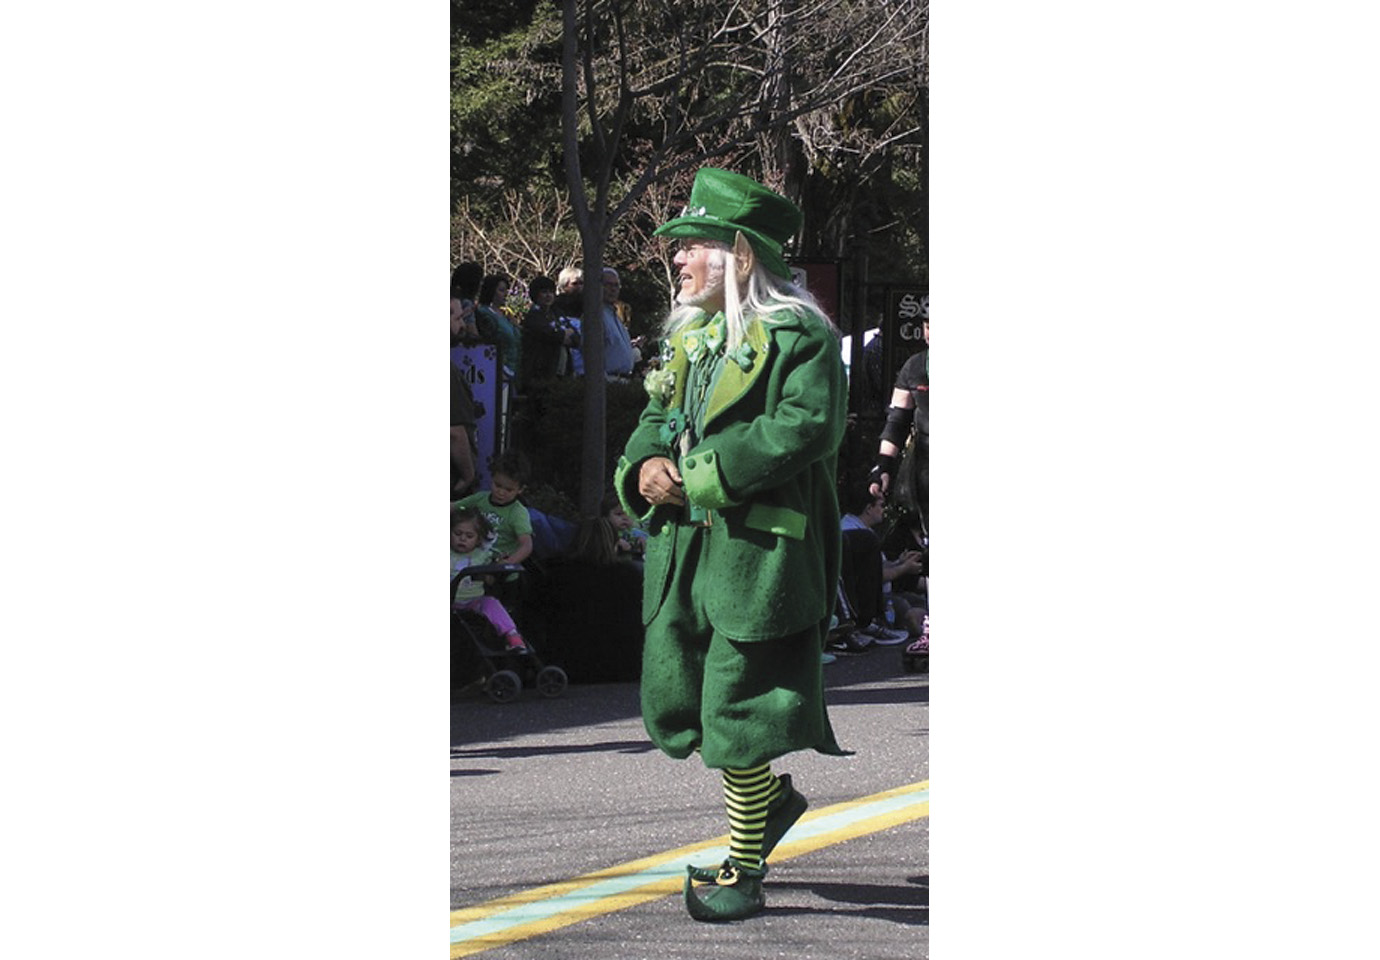 Every year, Murphys hosts an Irish Day Parade.